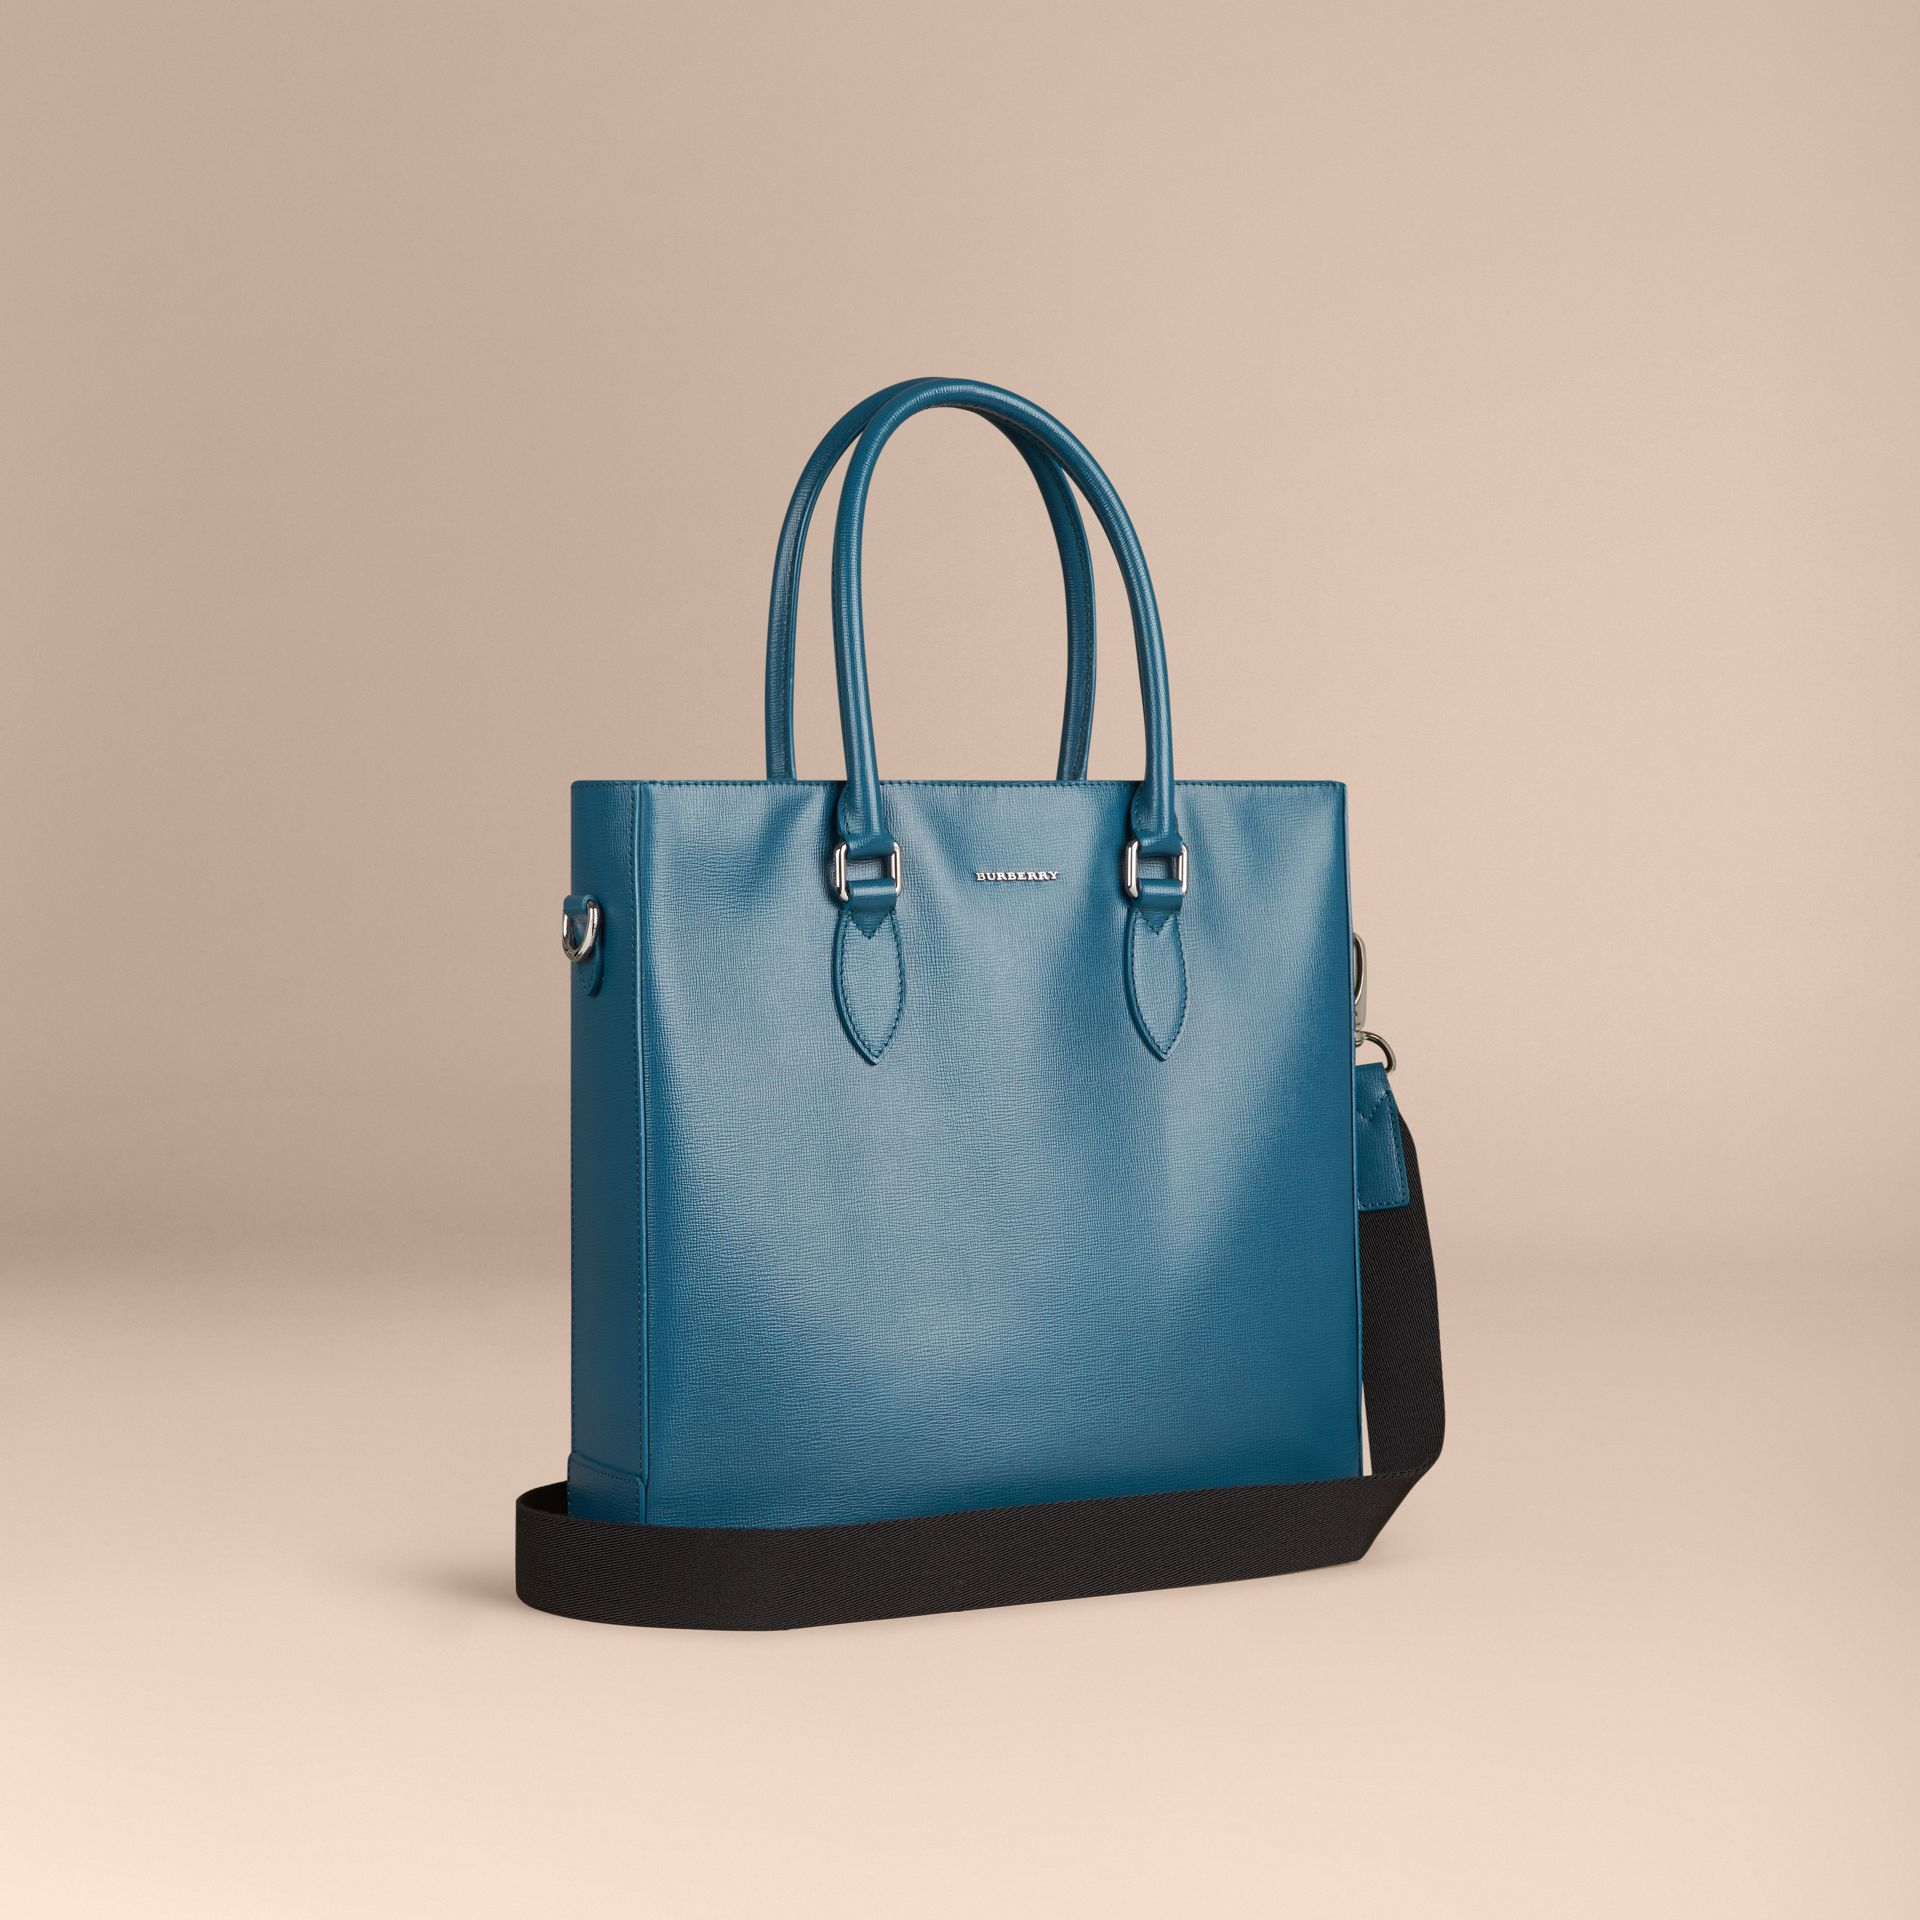 Mineral blue London Leather Tote Bag Mineral Blue - gallery image 1